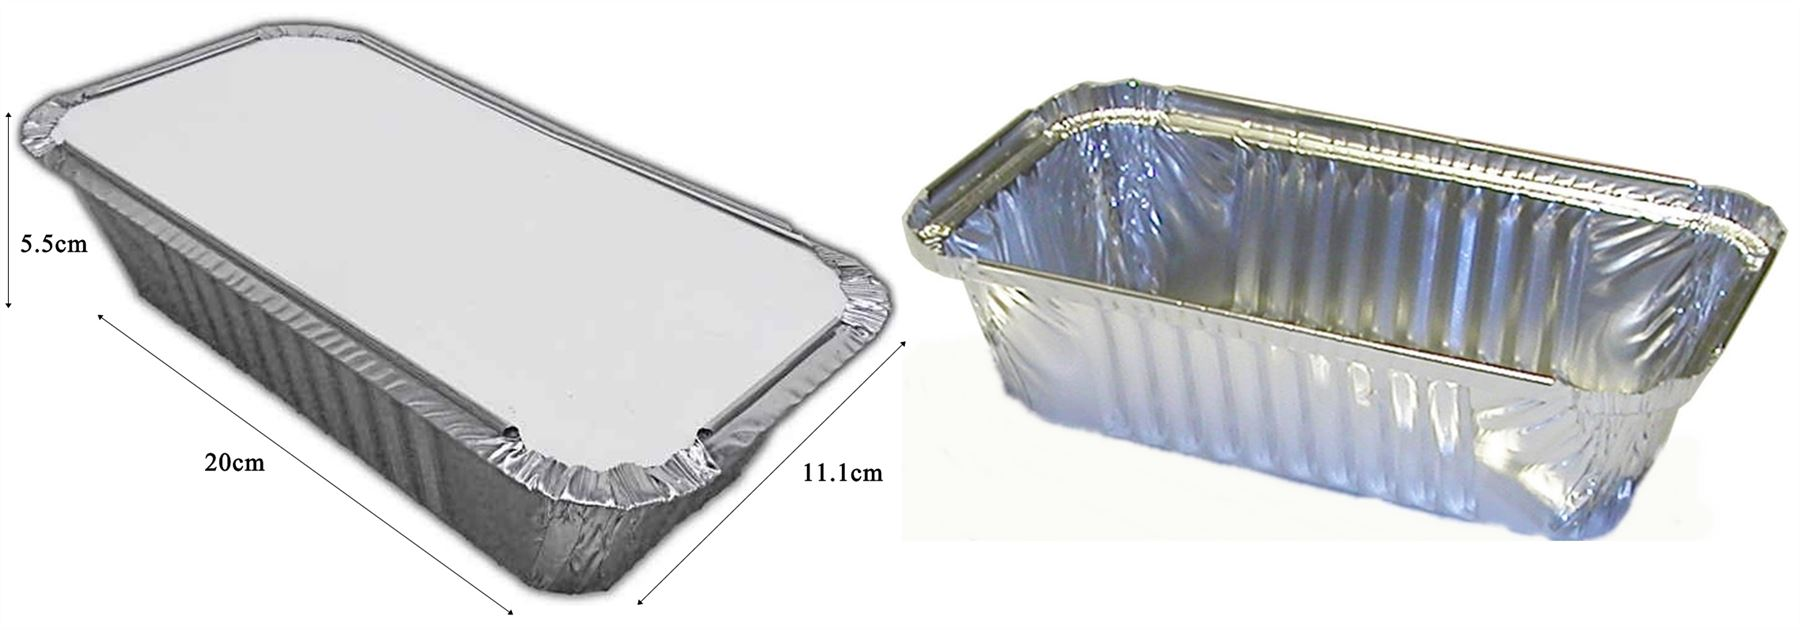 6 Large Silver Foil Food Trays Disposable Lids Catering